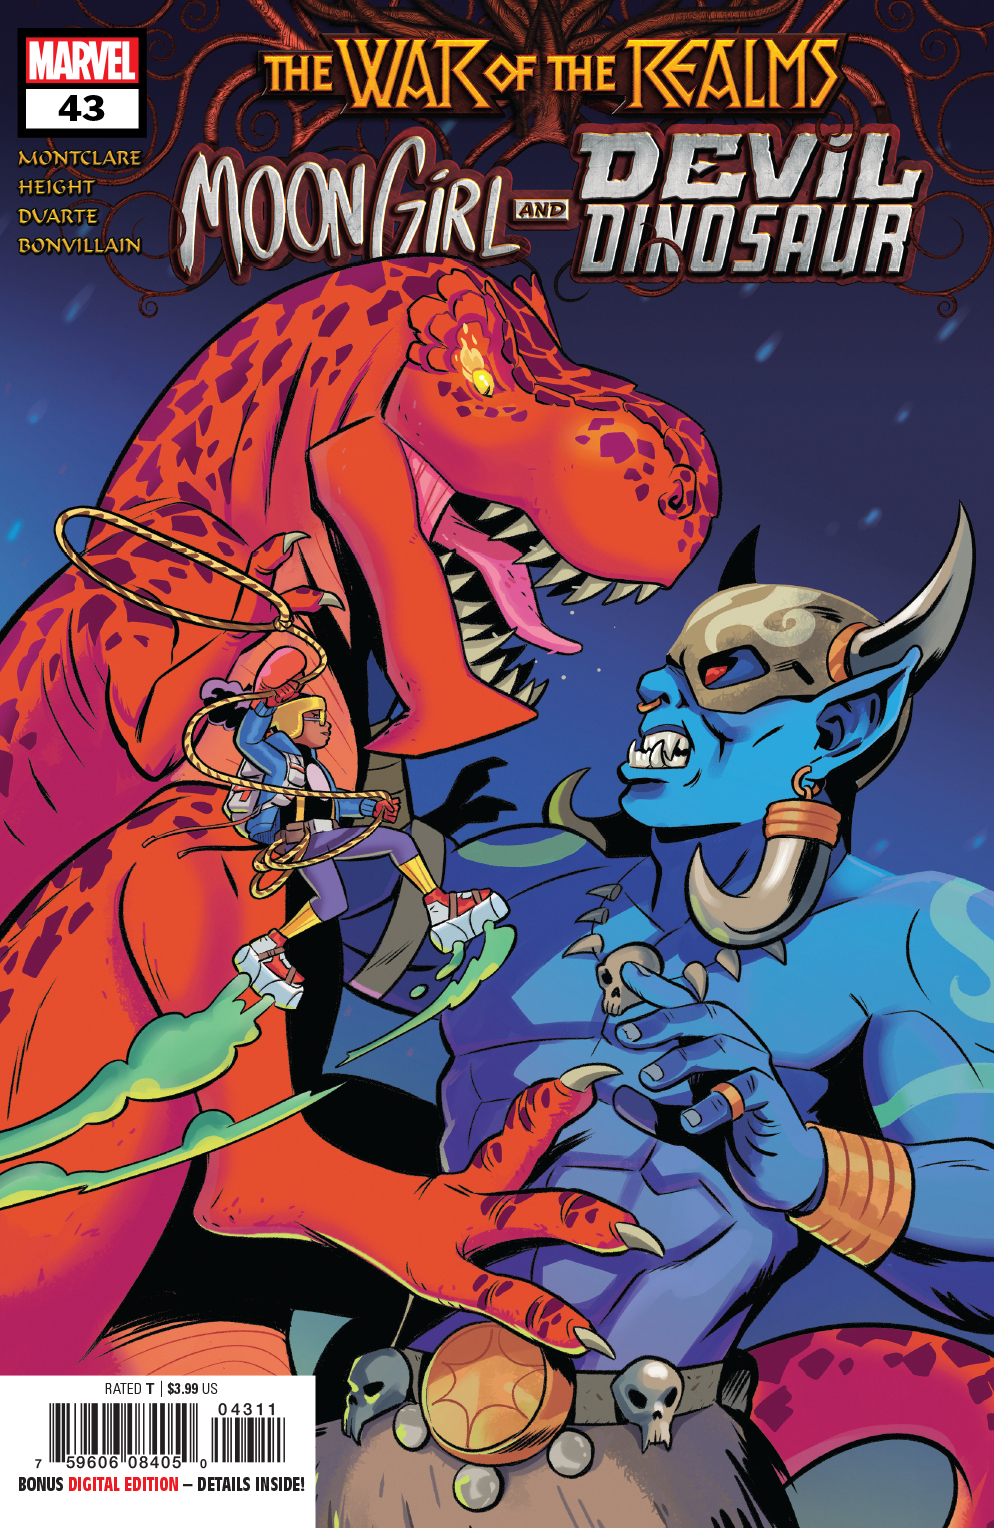 MOON GIRL AND DEVIL DINOSAUR #43 WR